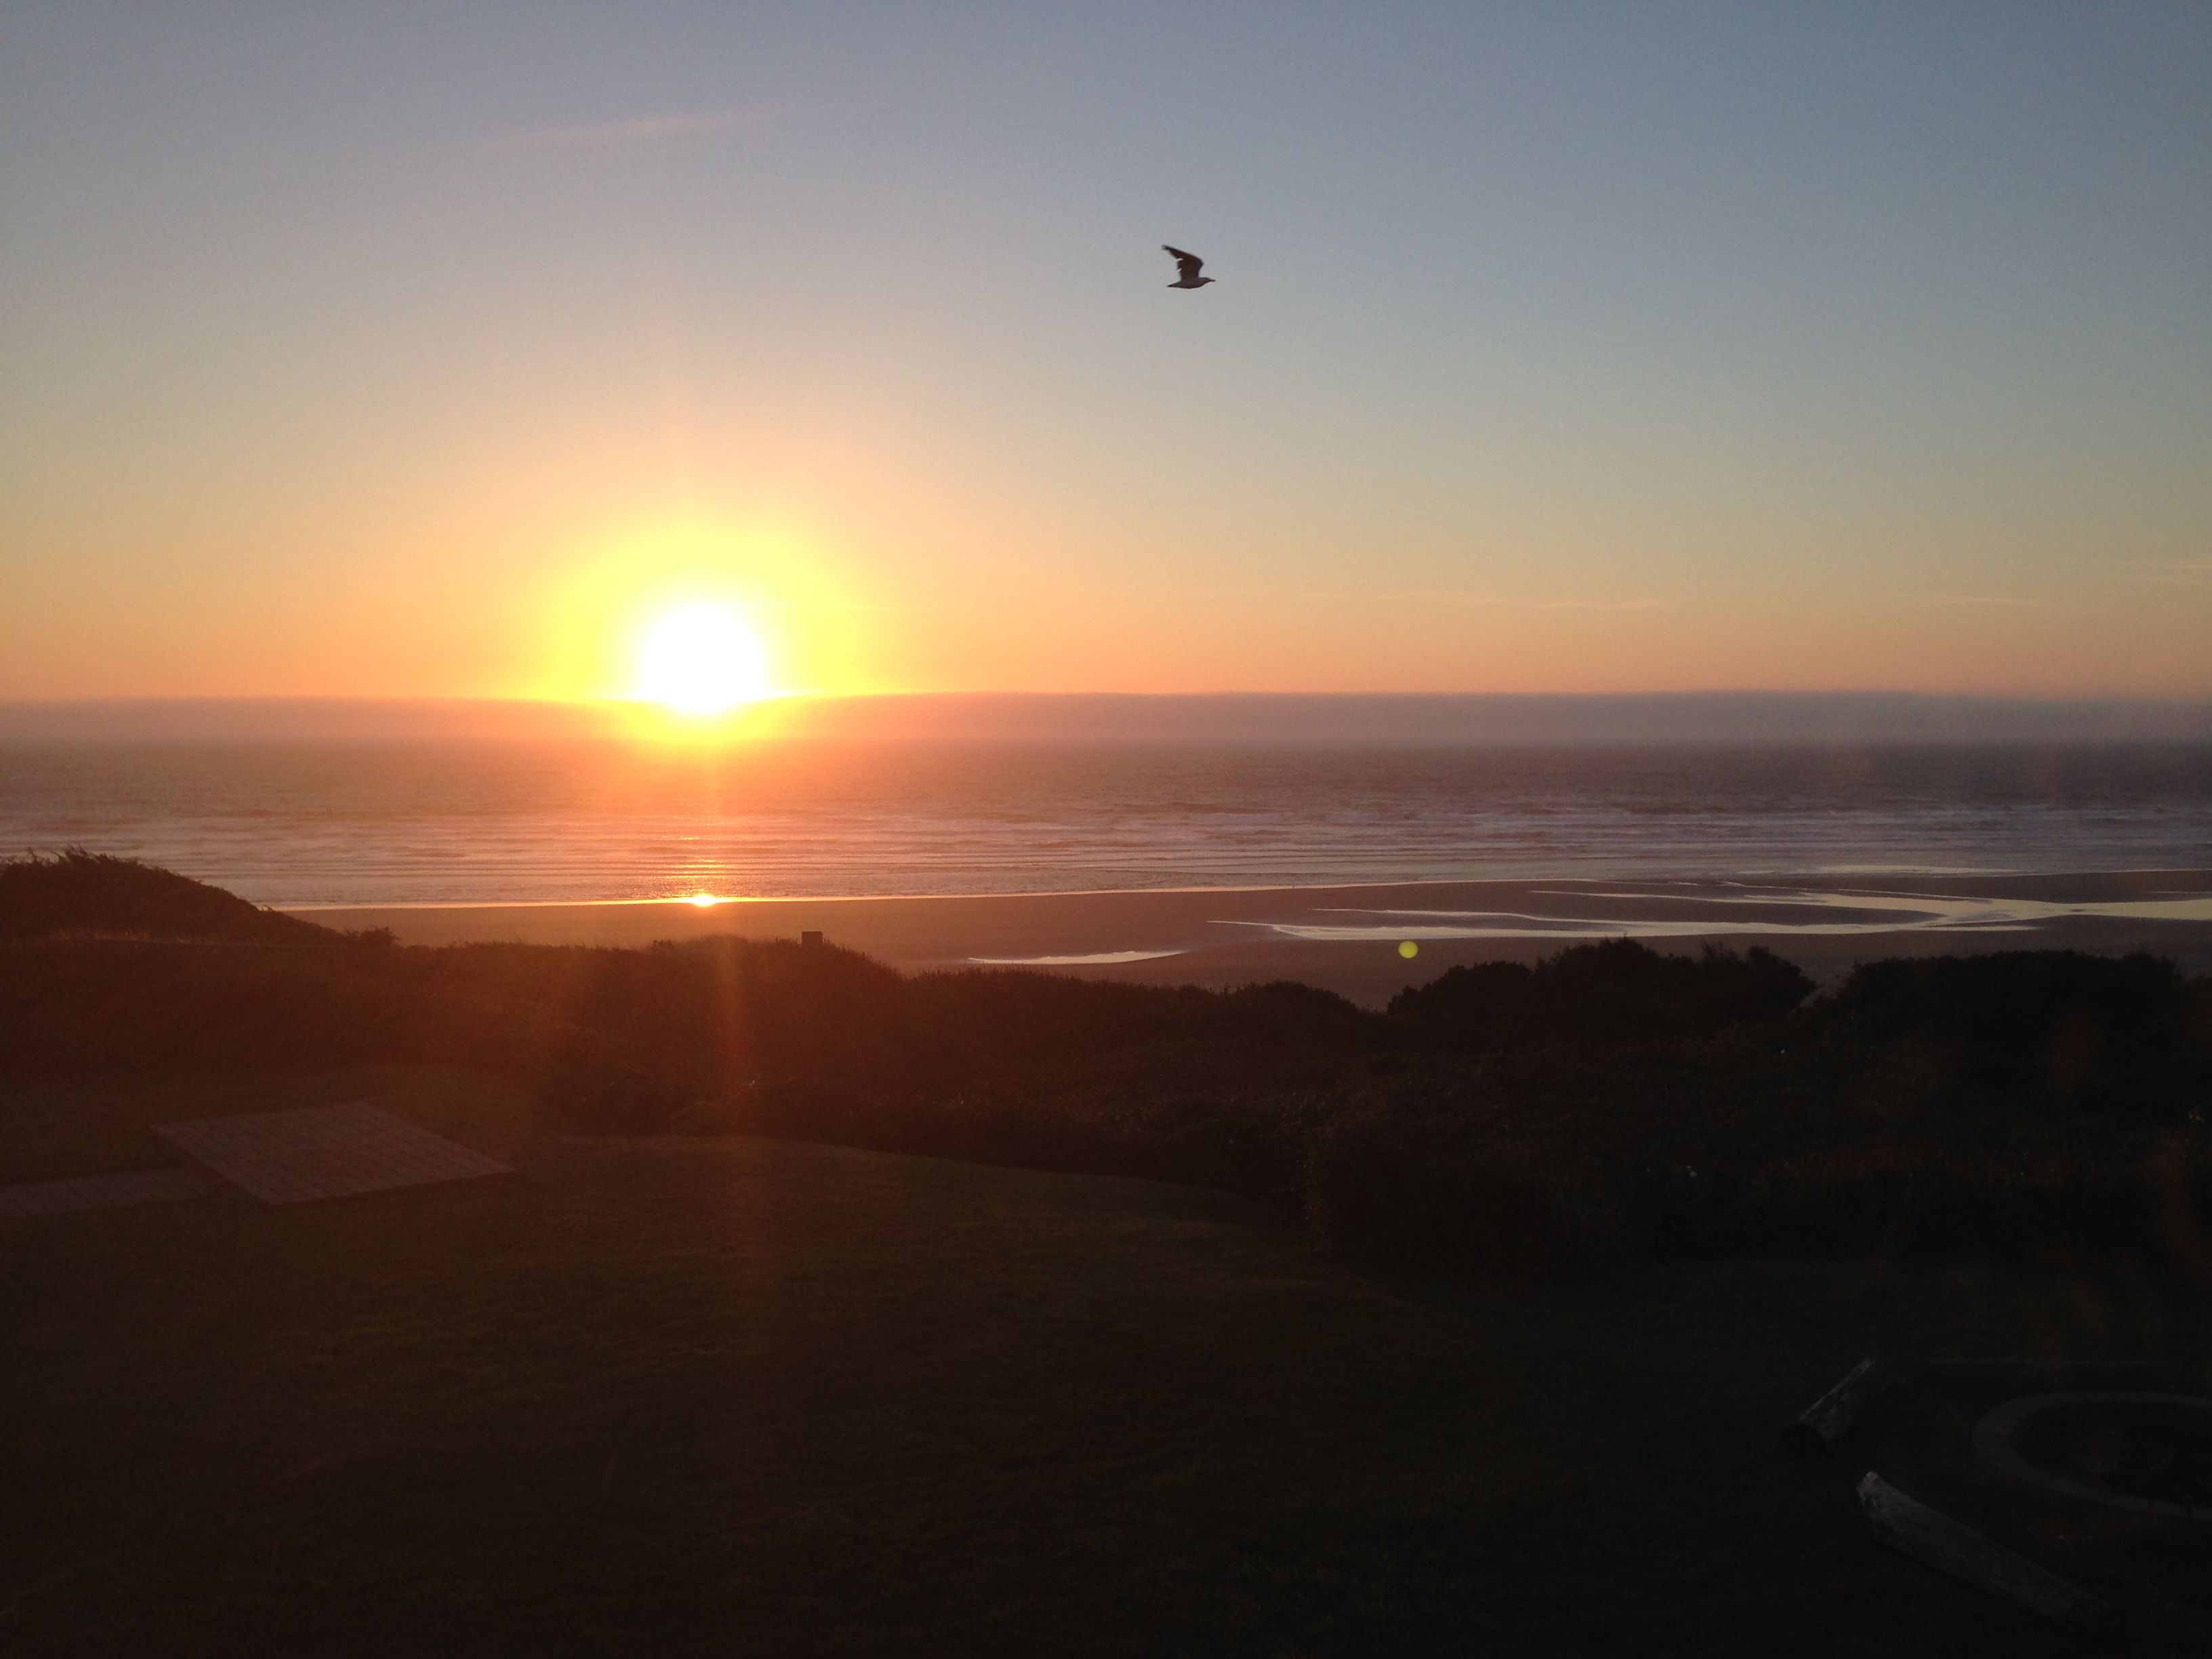 this is actually taken with my iphone. beautiful sunset somewhere along the west coast, USA